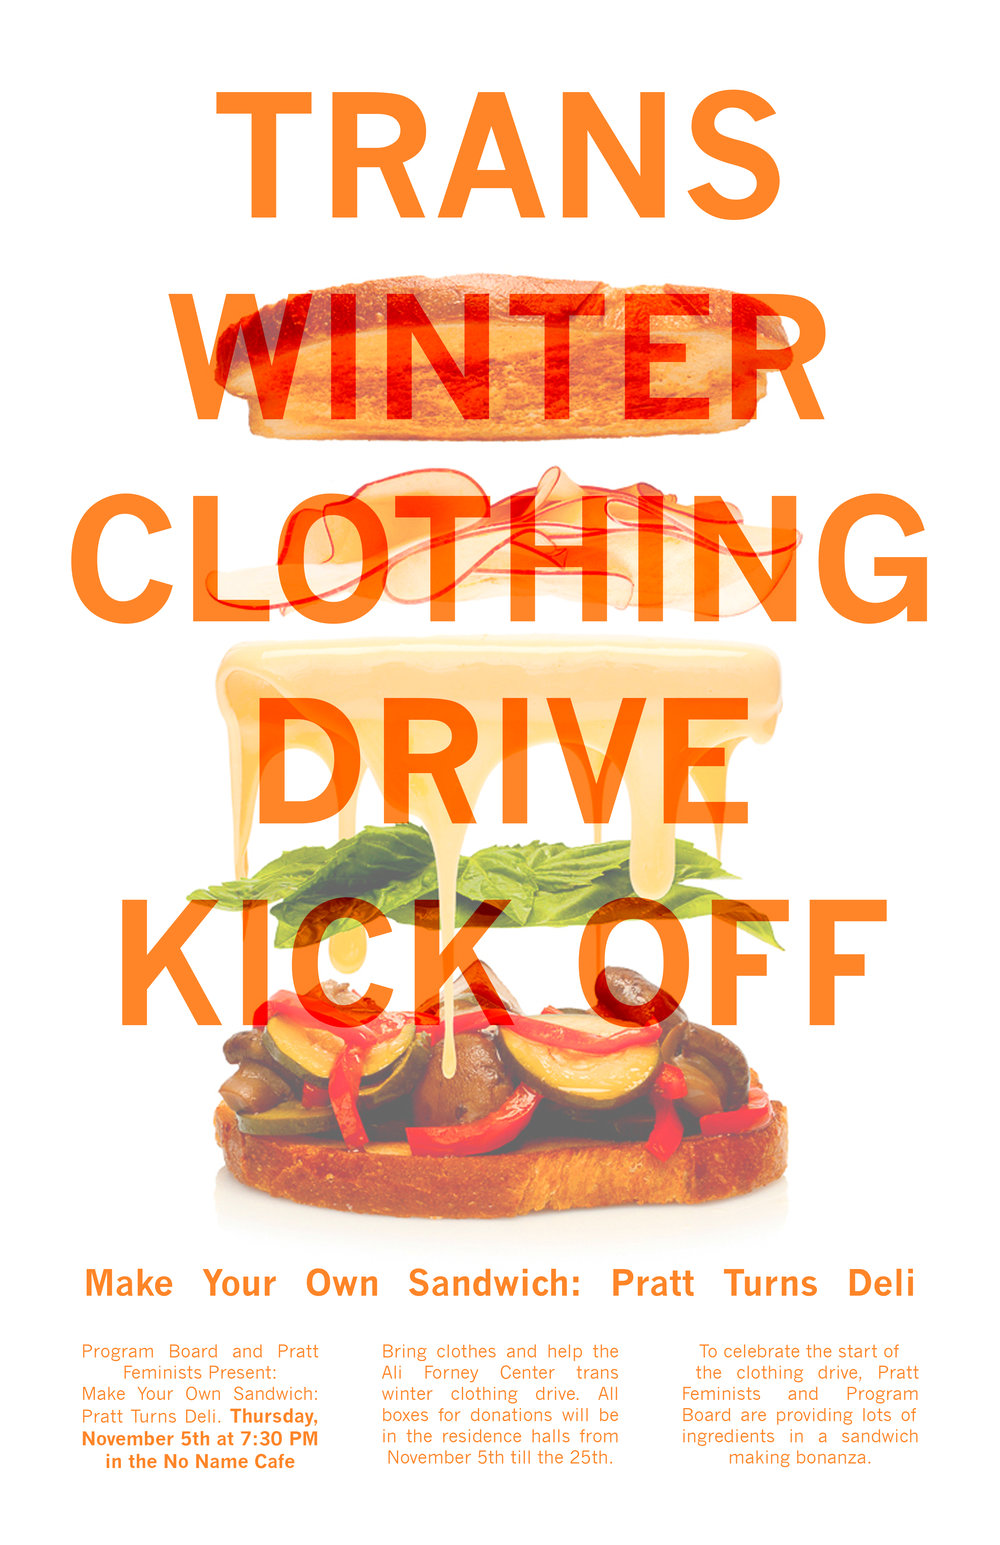 Trans Winter Clothing Drive Kickoff.jpg